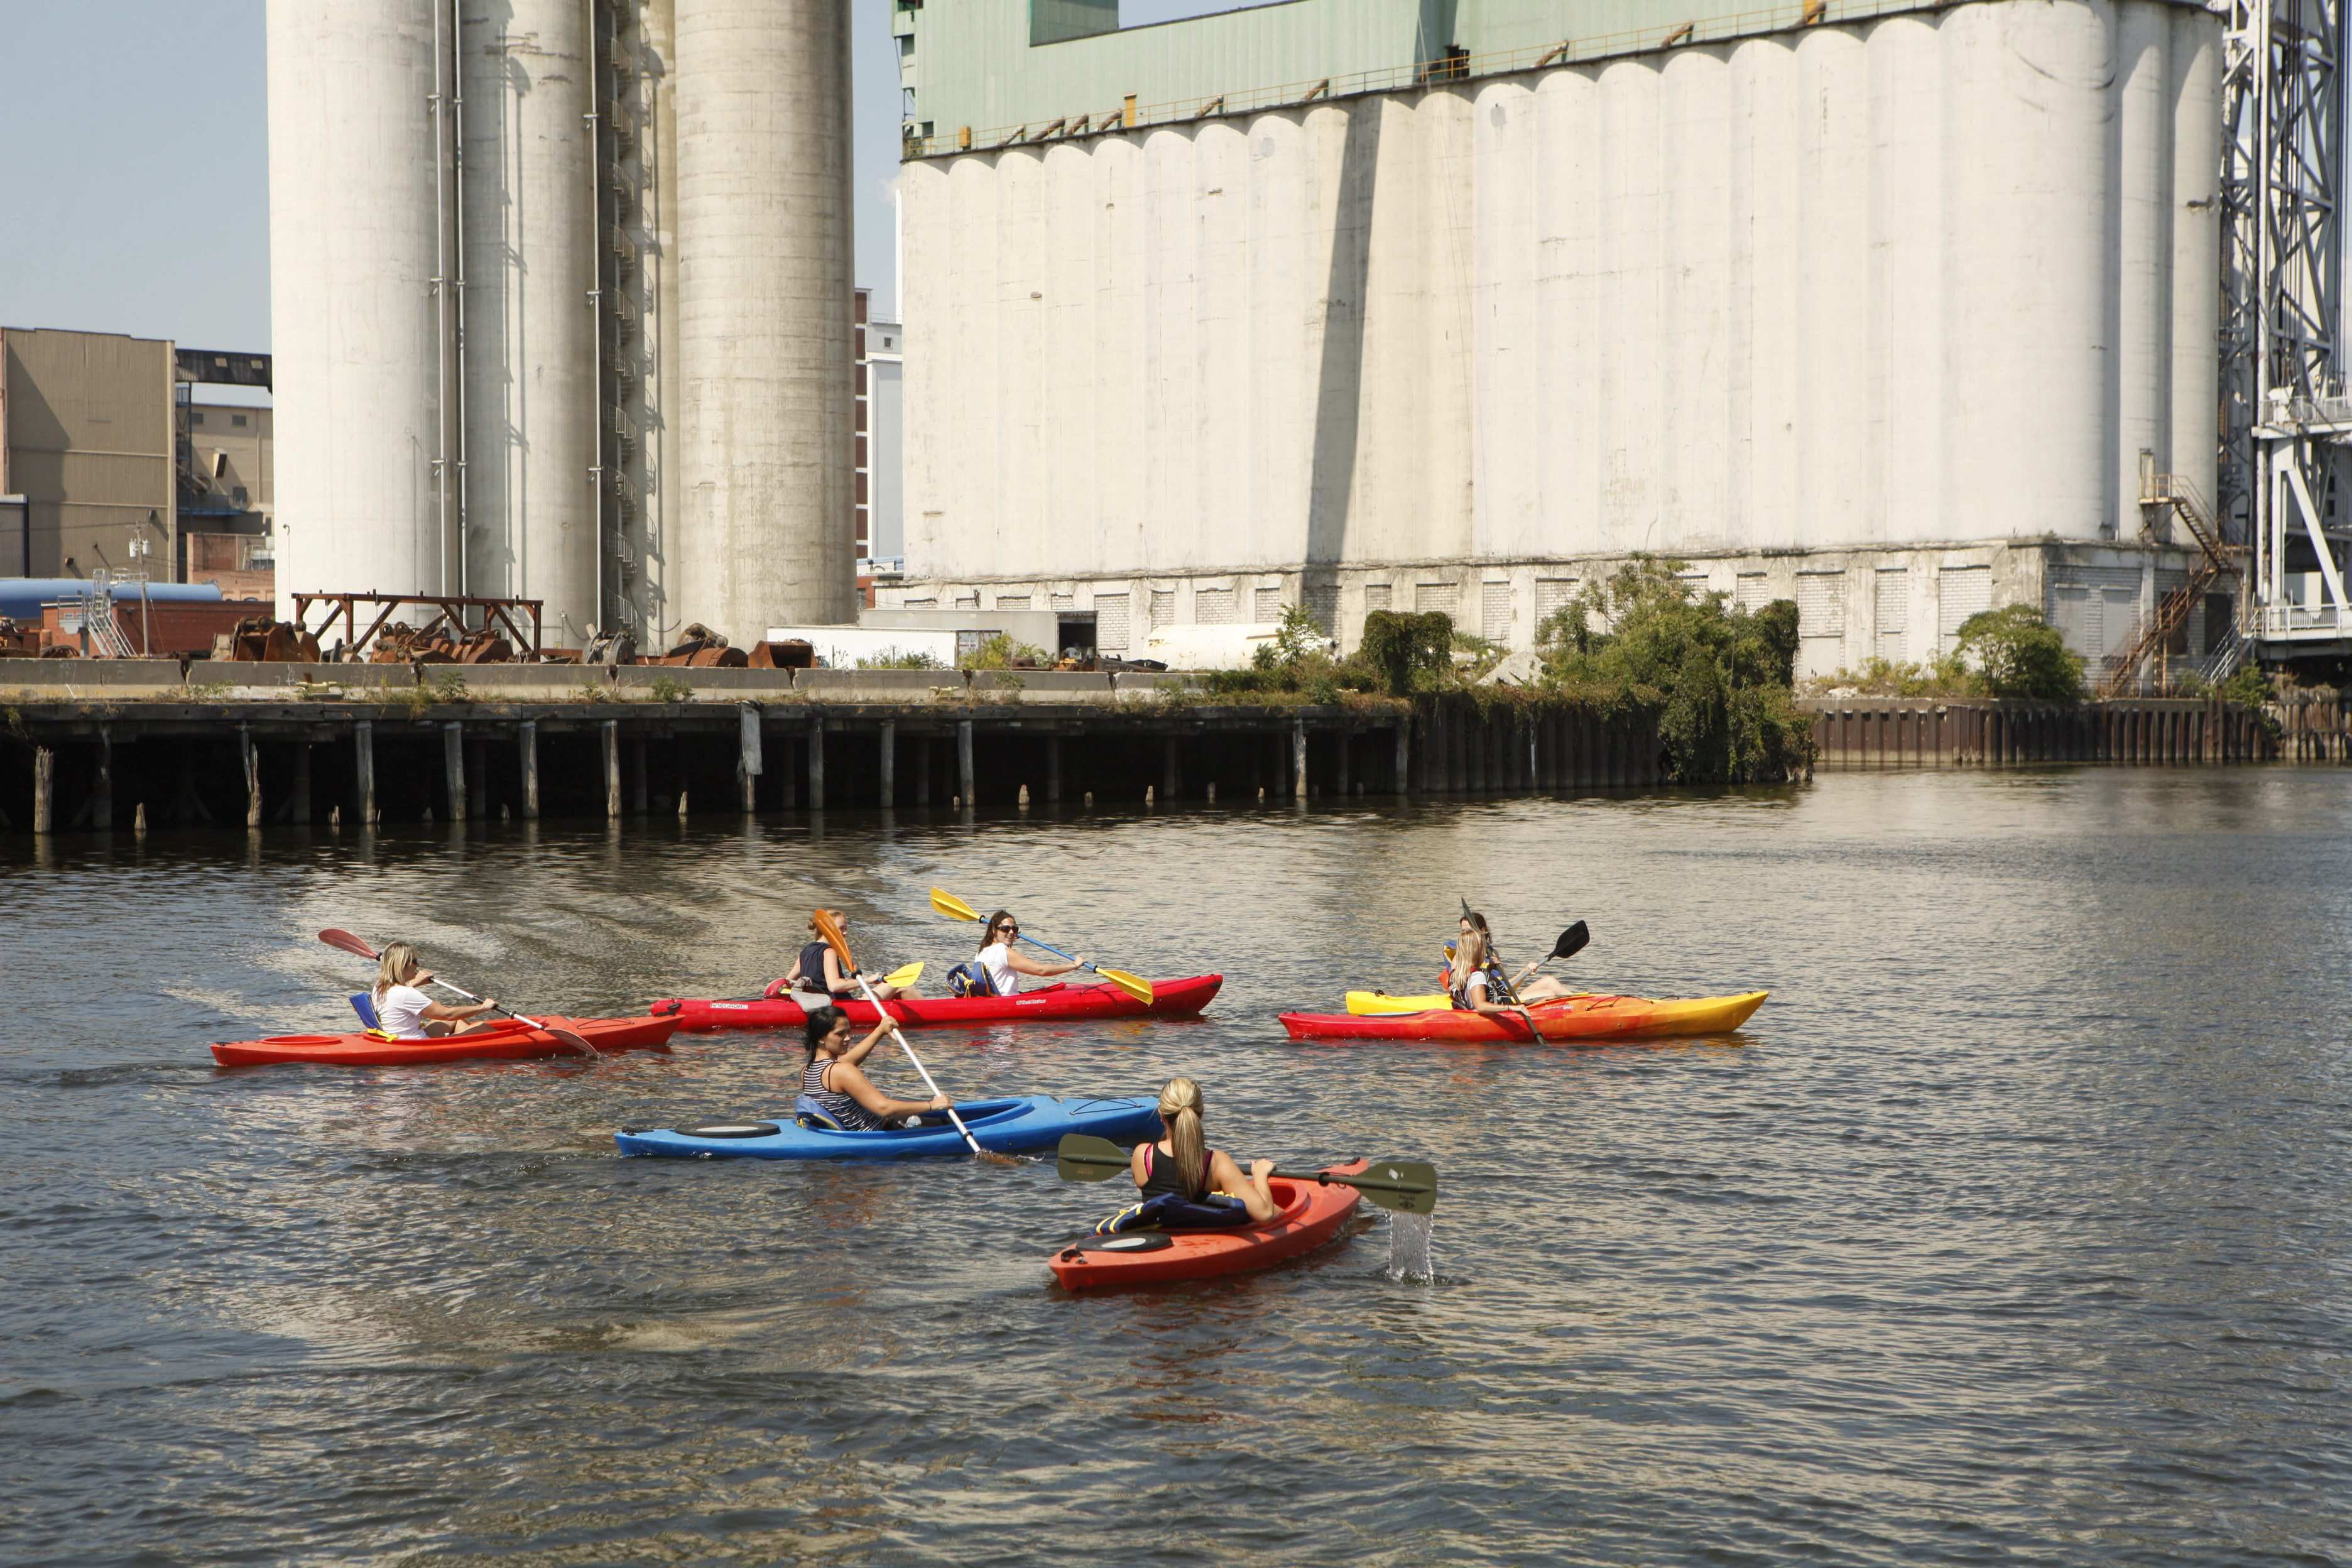 Once a hot spot for contamination, the Buffalo River is now a hot spot for recreation, thanks to the Great Lakes Restoration Initiative. (Derek Gee/Buffalo News file photo)